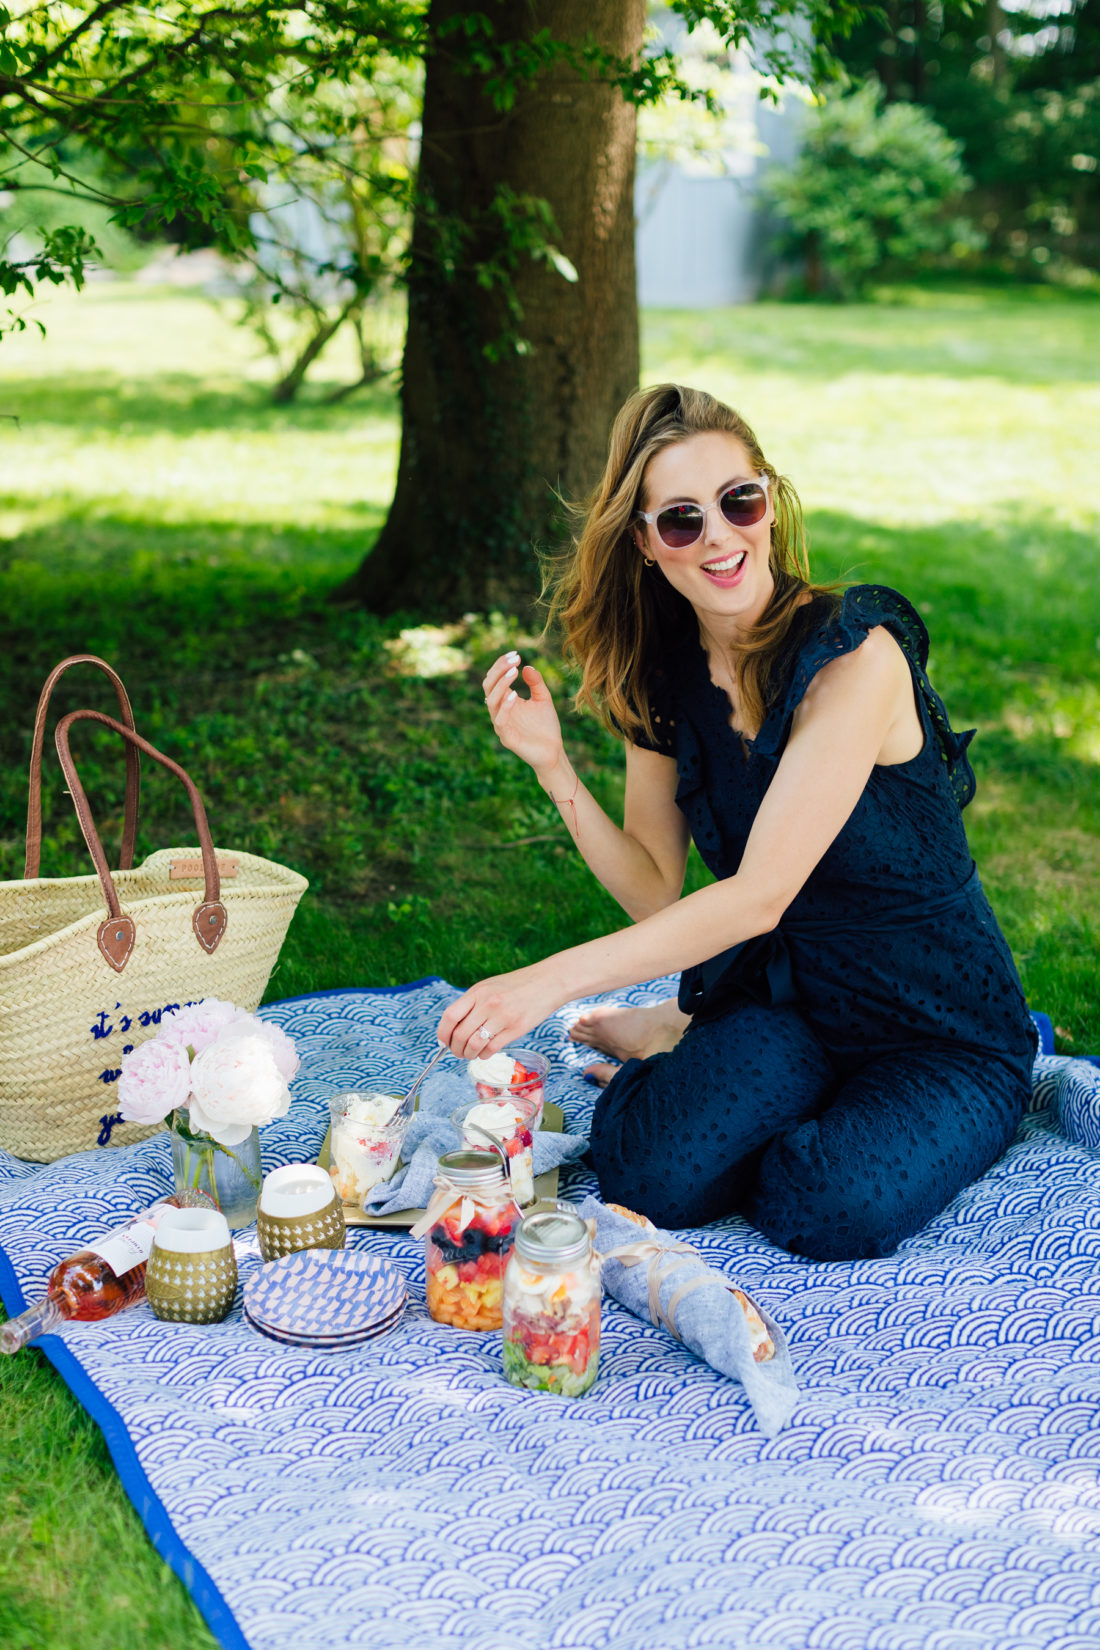 Eva Amurri Martino kneels on a picnic blanket in her backyard